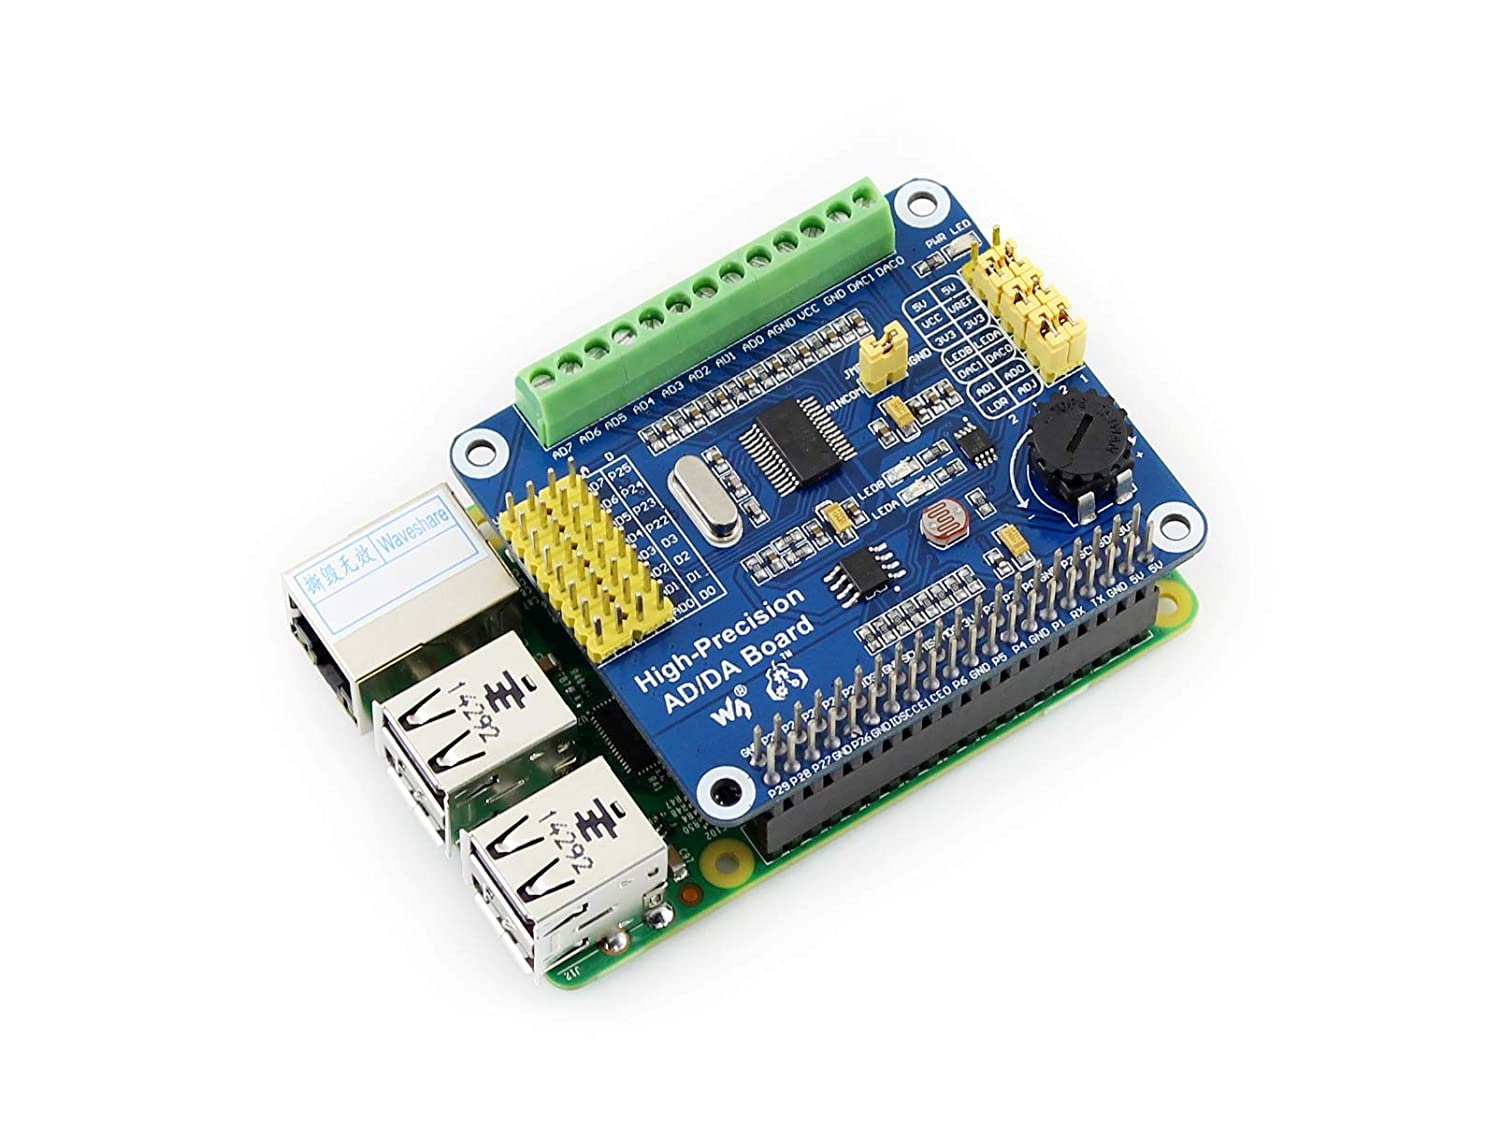 Waveshare Raspberry Pi AD/DA Expansion Sheild Board for Adding High-Precision AD/DA Functions to Raspberry Pi Onboard ADS1256 DAC8552 Sensor Interface: ...